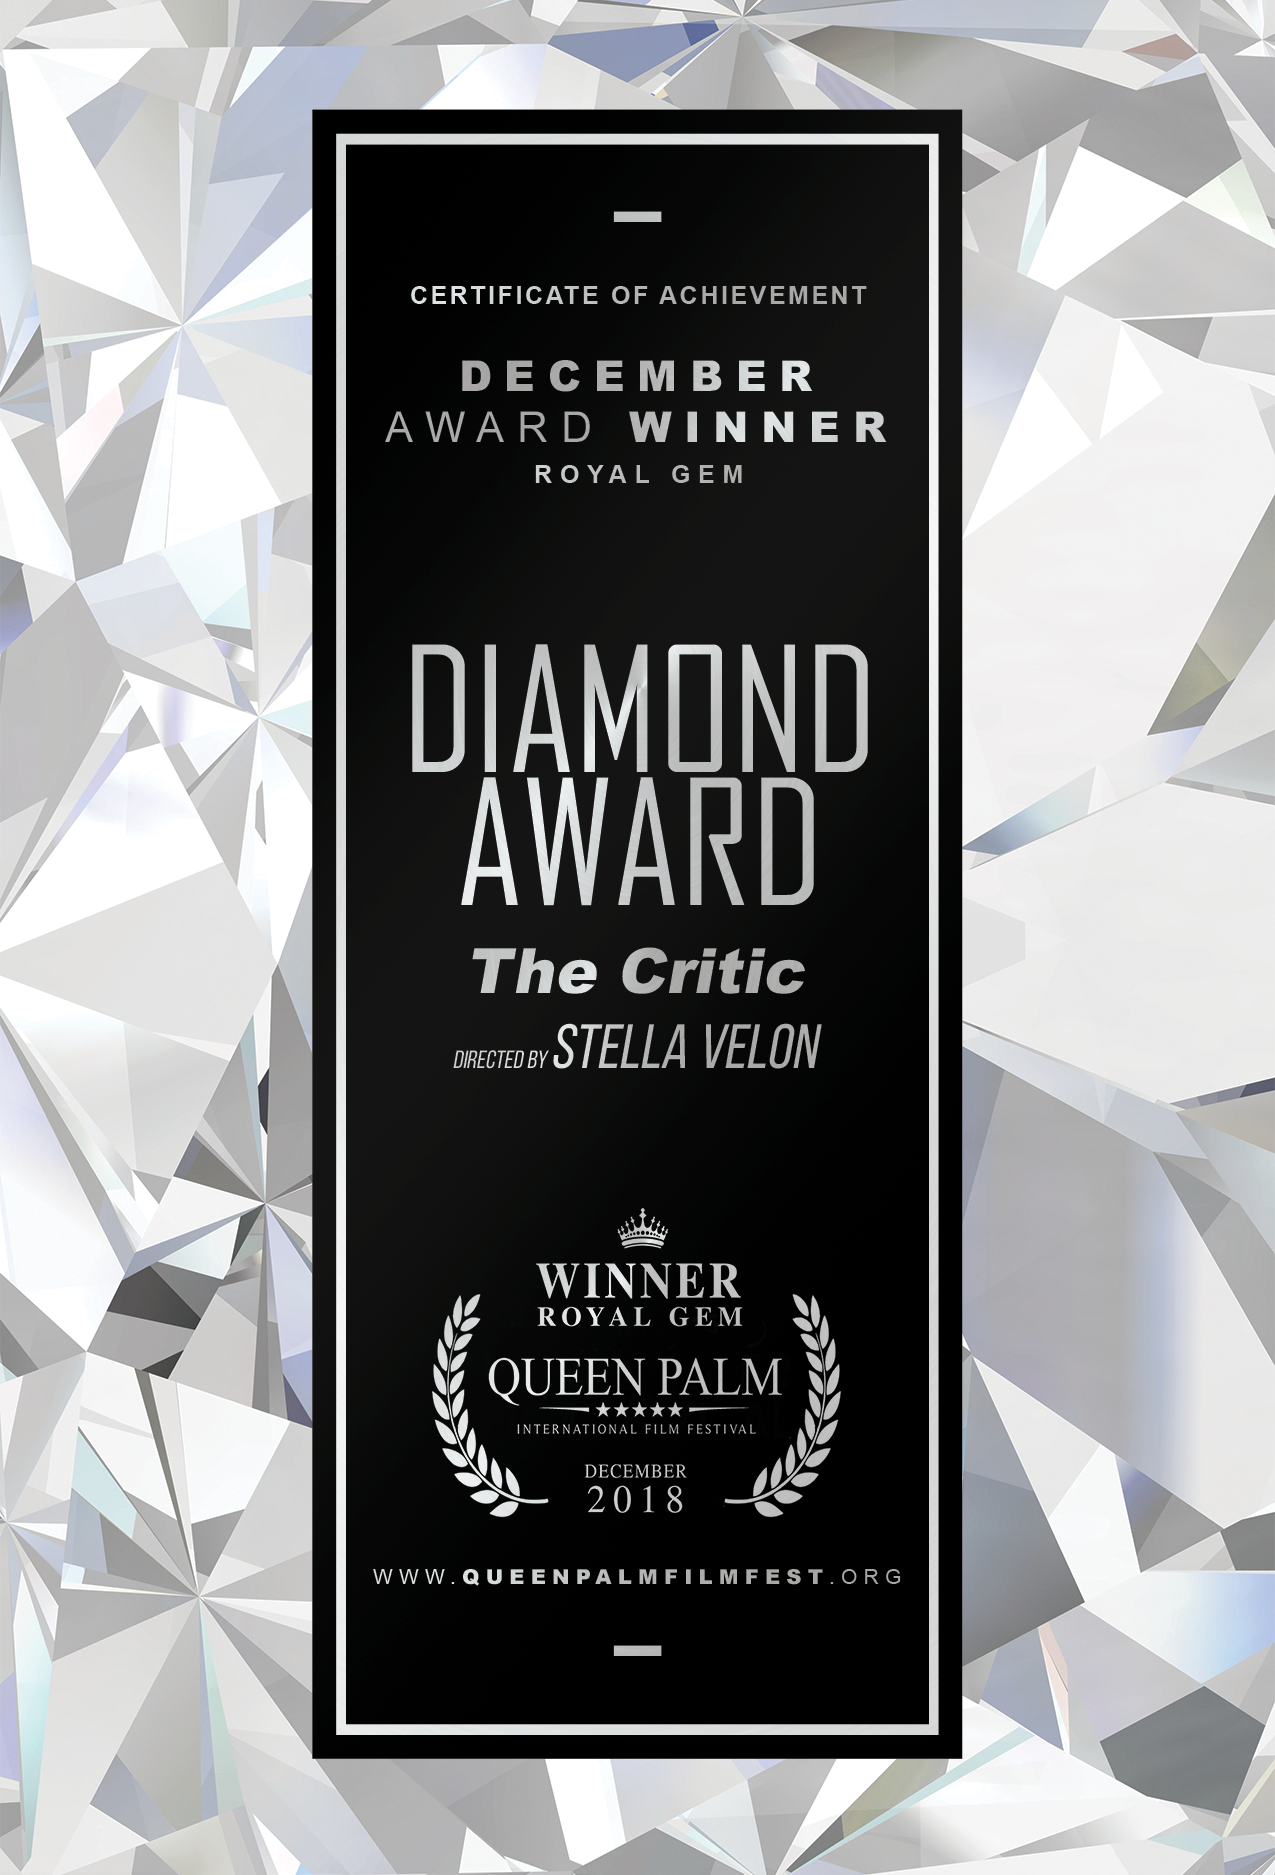 queenpalmfilmfest.org/dec-2018-royal-gem-diamonds